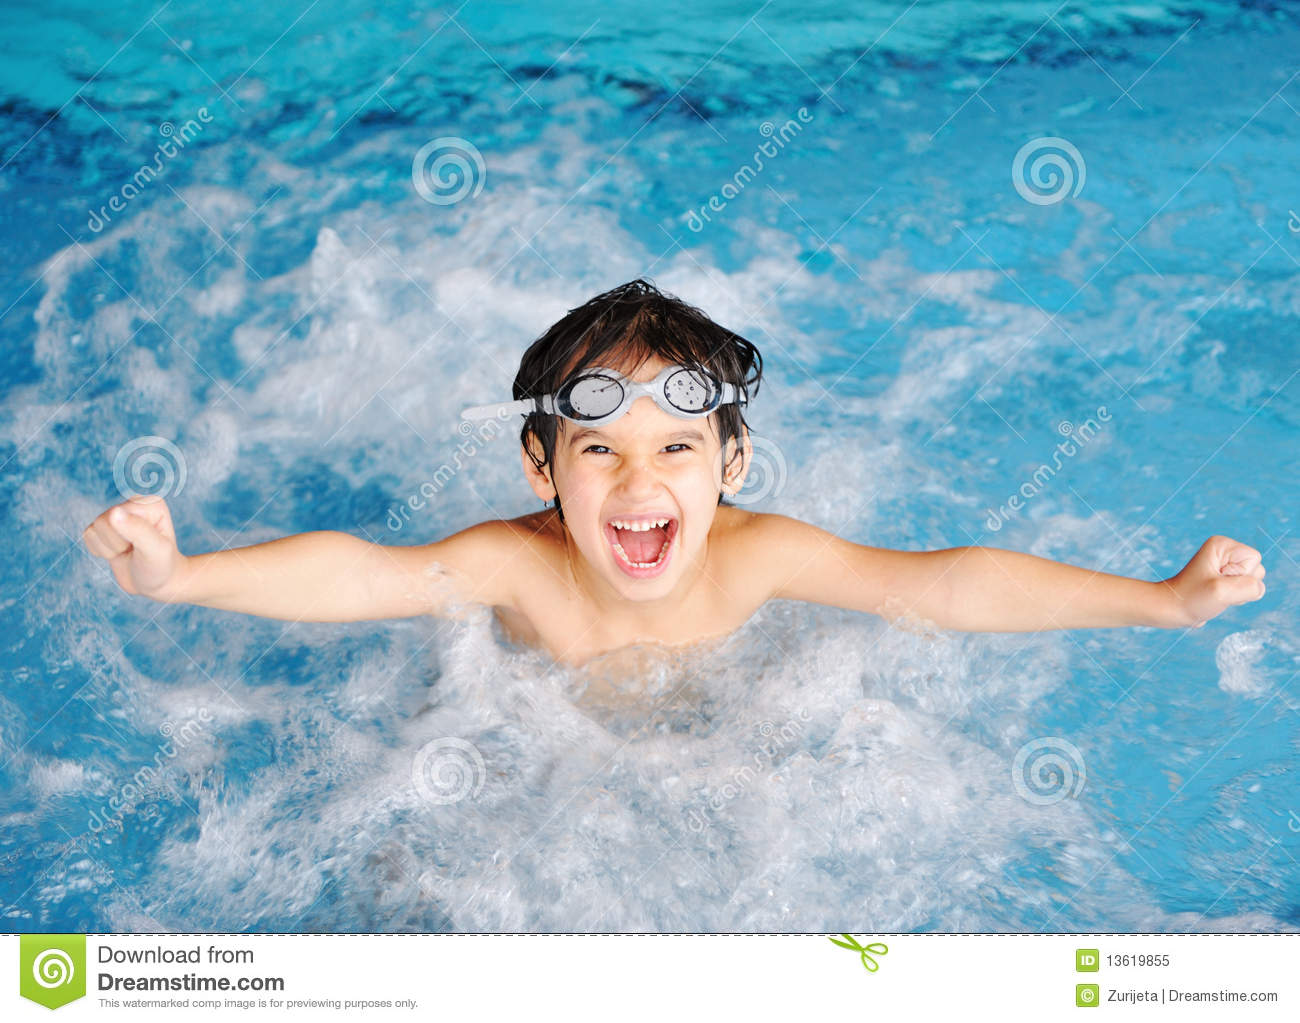 Swimming kid royalty free stock photo image 13619855 for Swimming images